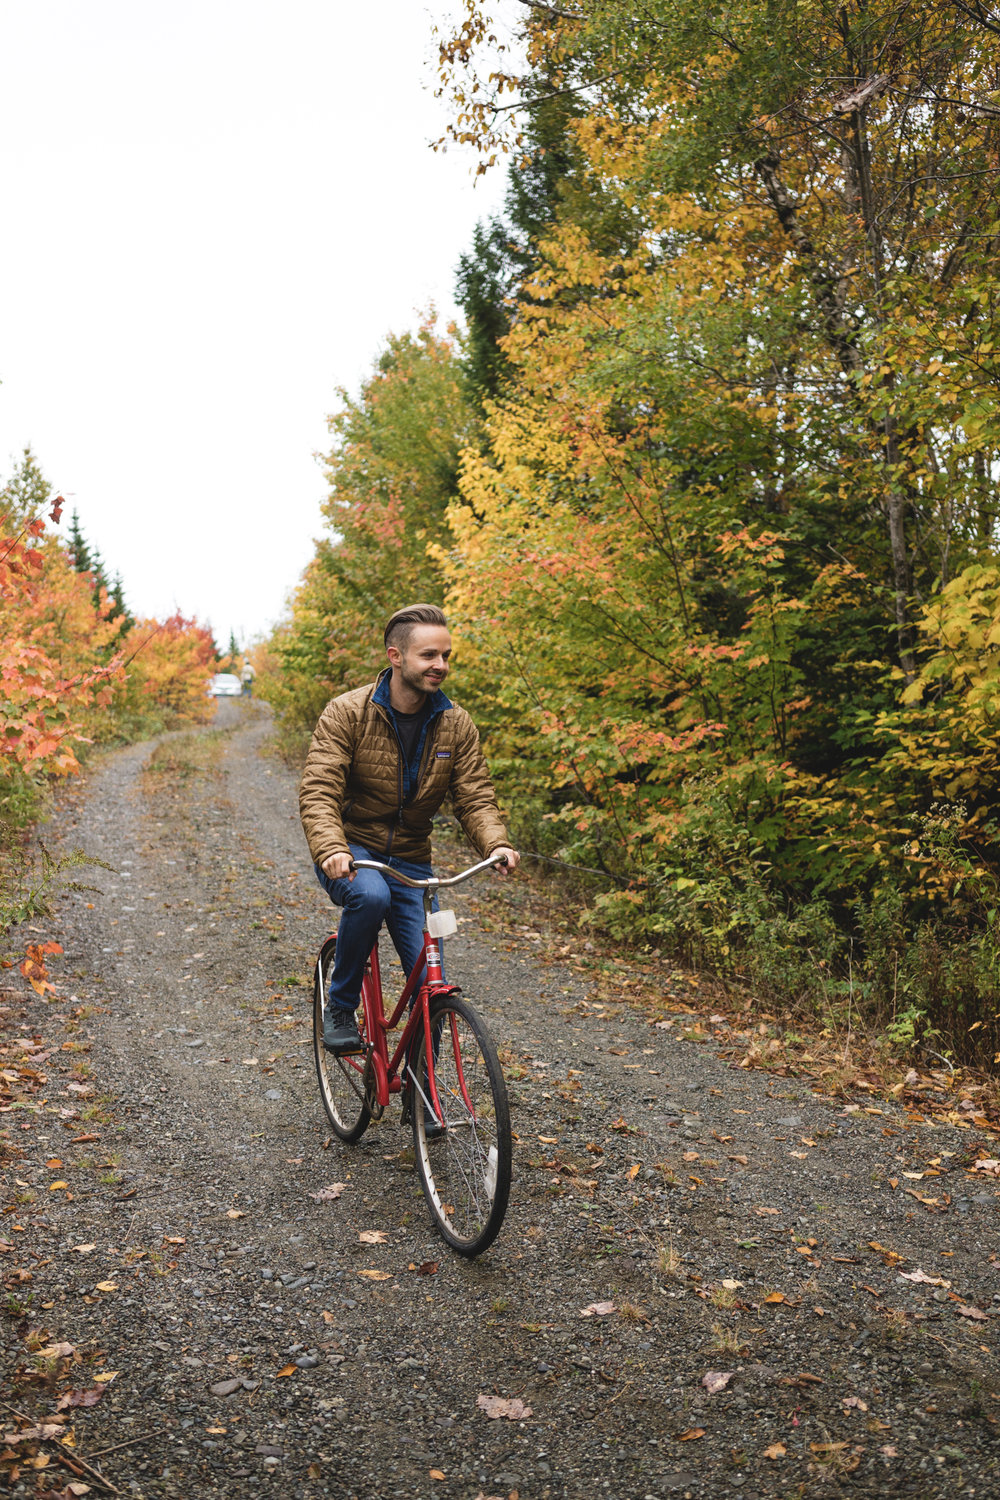 Things to do in Maine in the fall